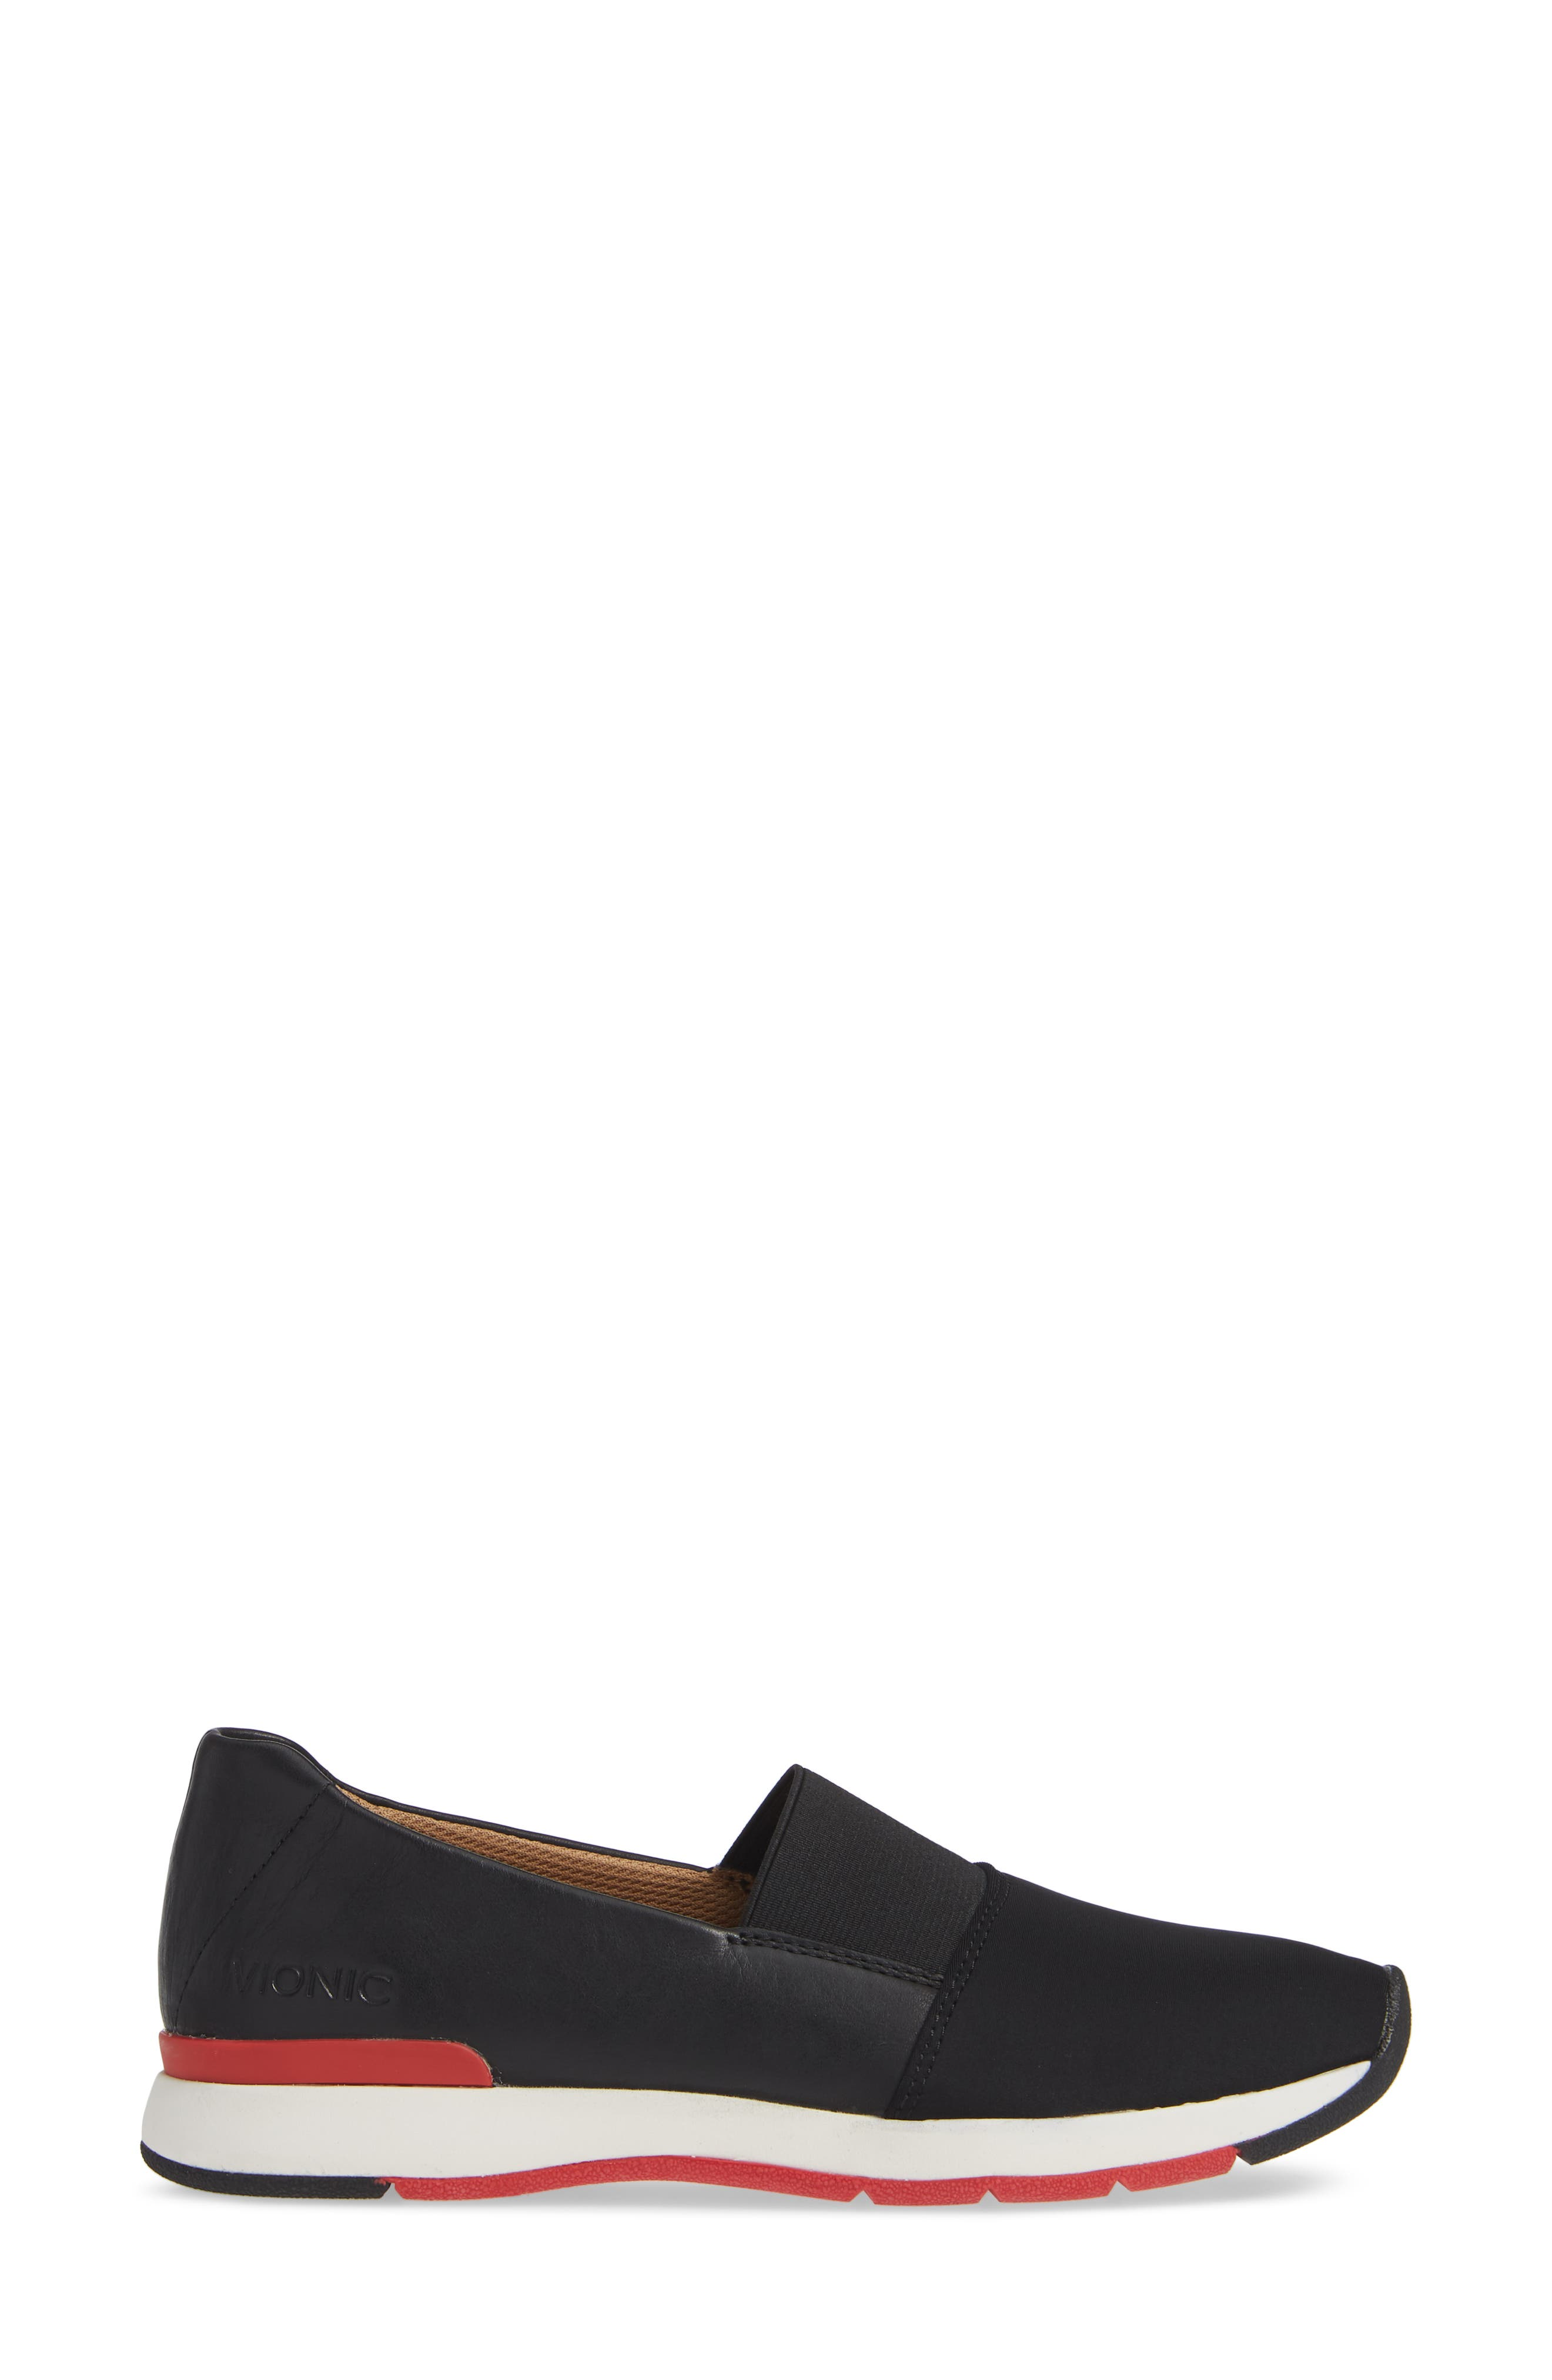 Cameo Slip-On Shoe,                             Alternate thumbnail 3, color,                             BLACK LEATHER NEOPRENE